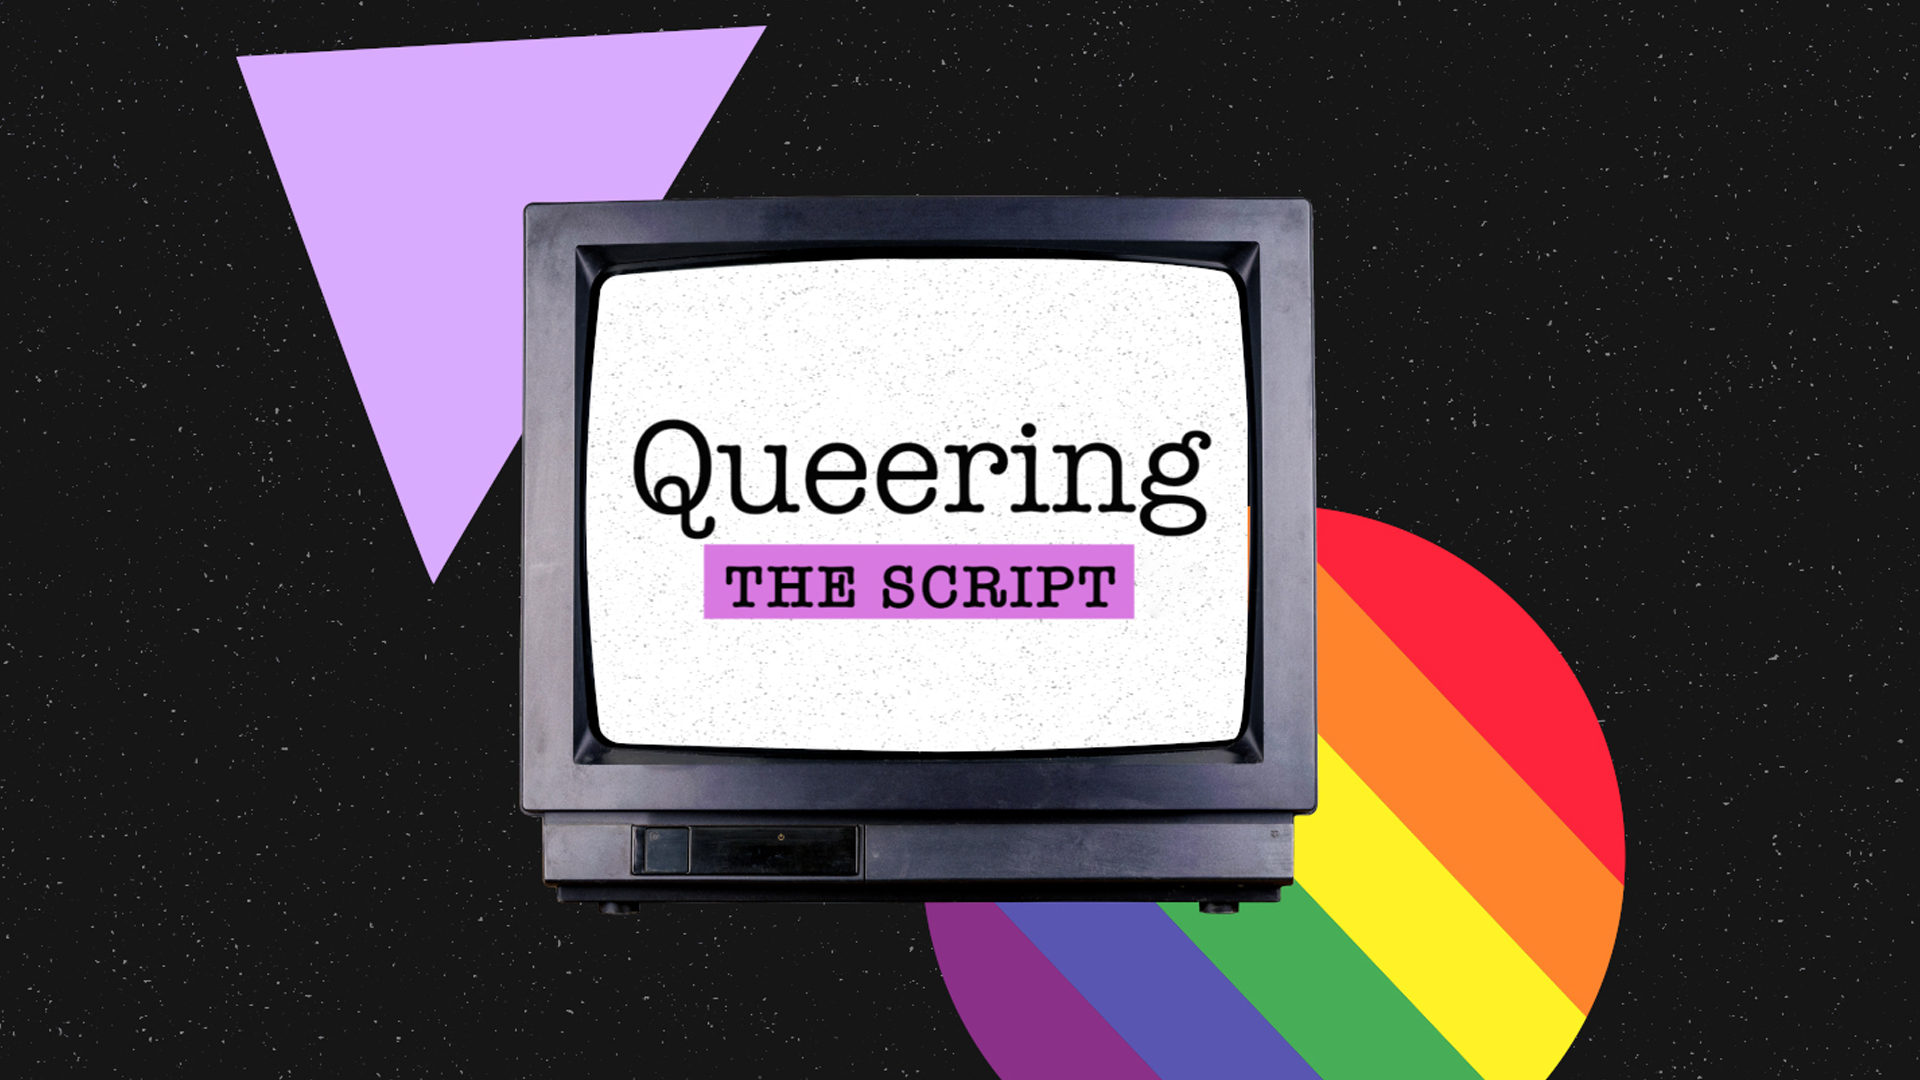 Queering the Script